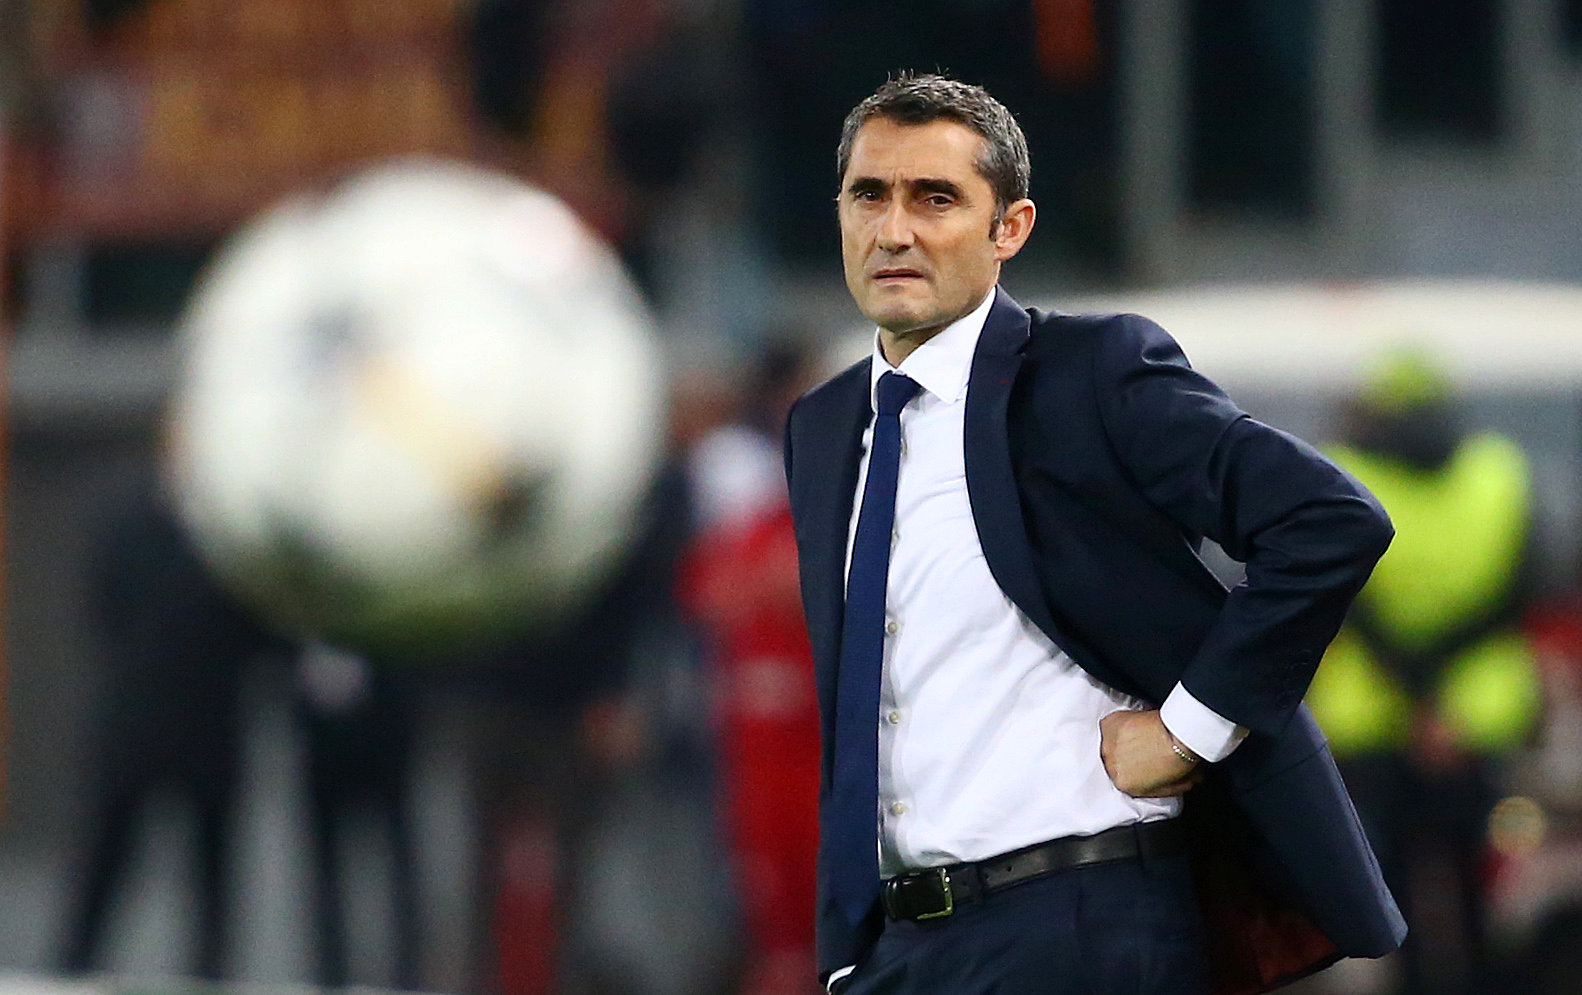 Football: Conservative Valverde blasted after 'historic debacle'